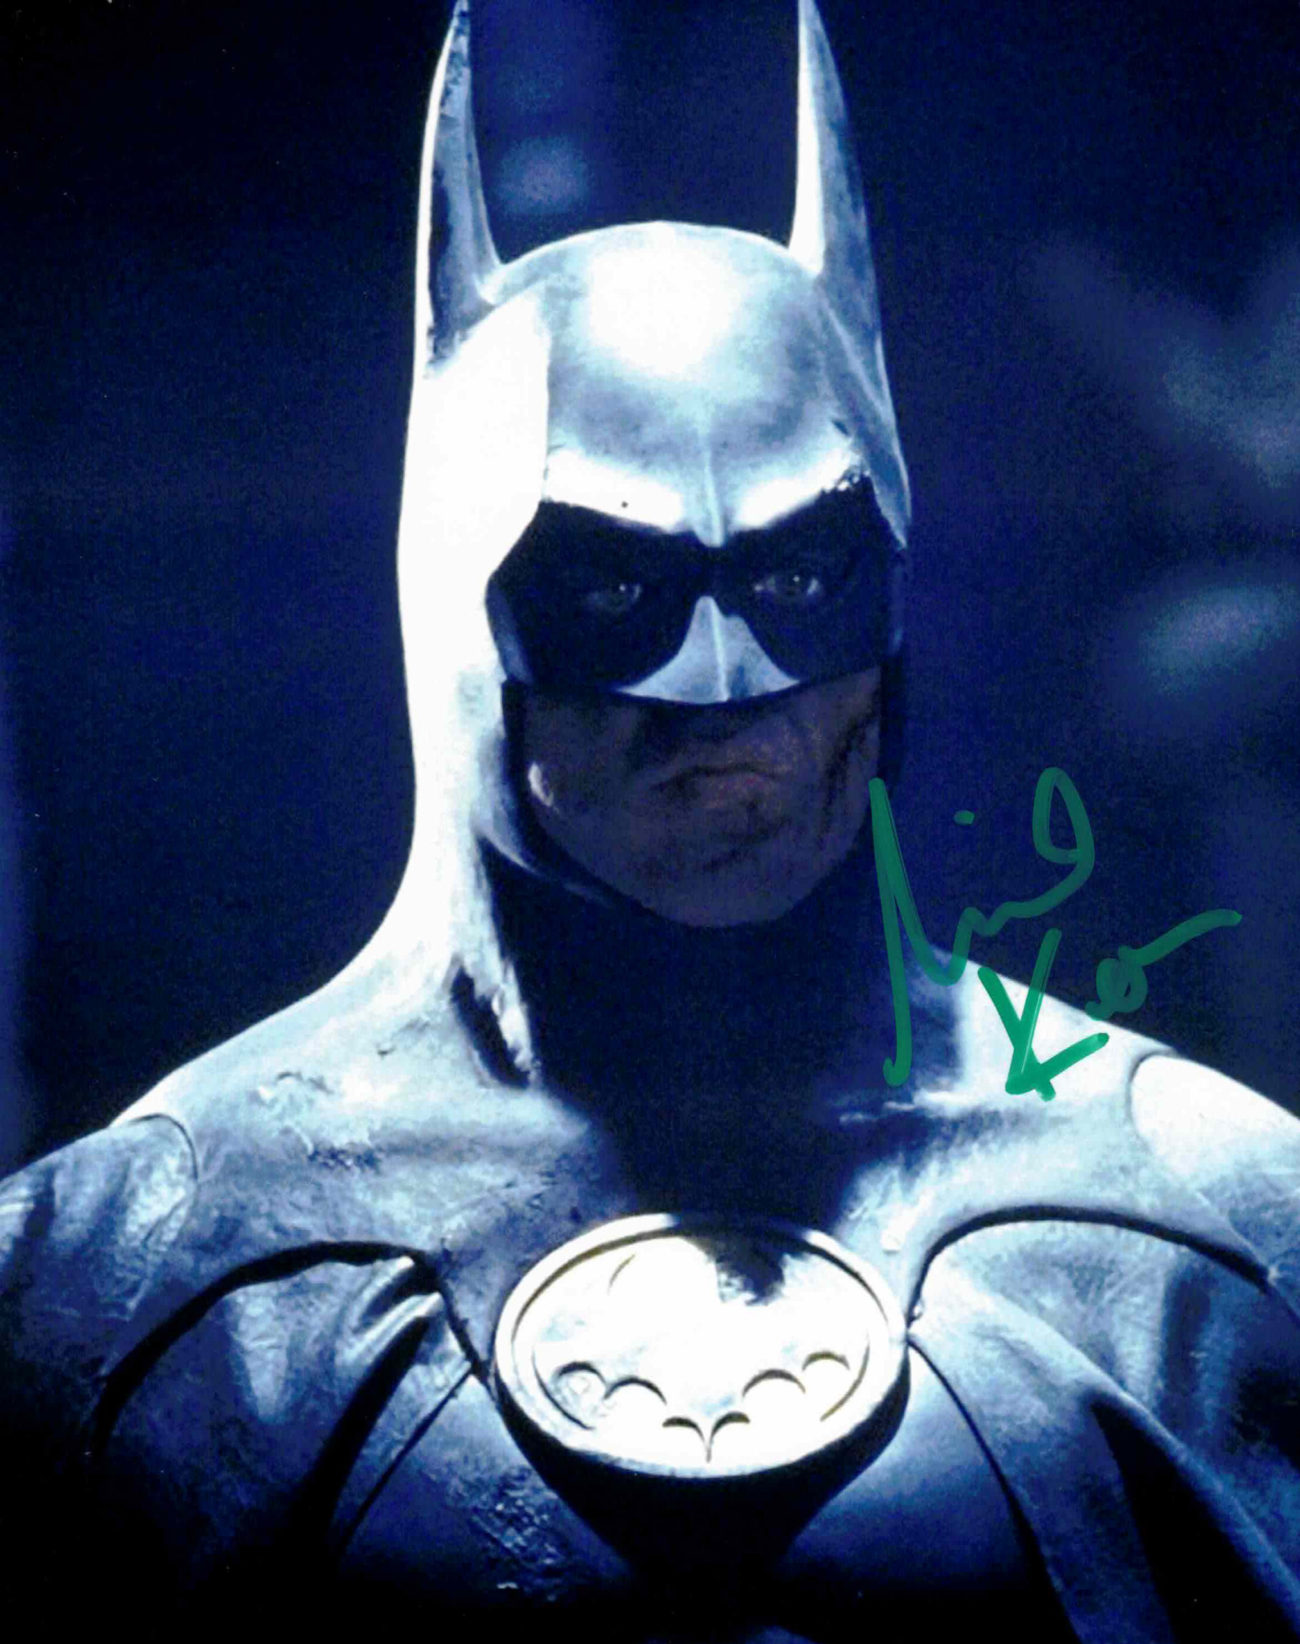 Michael Keaton / Batman - autogram